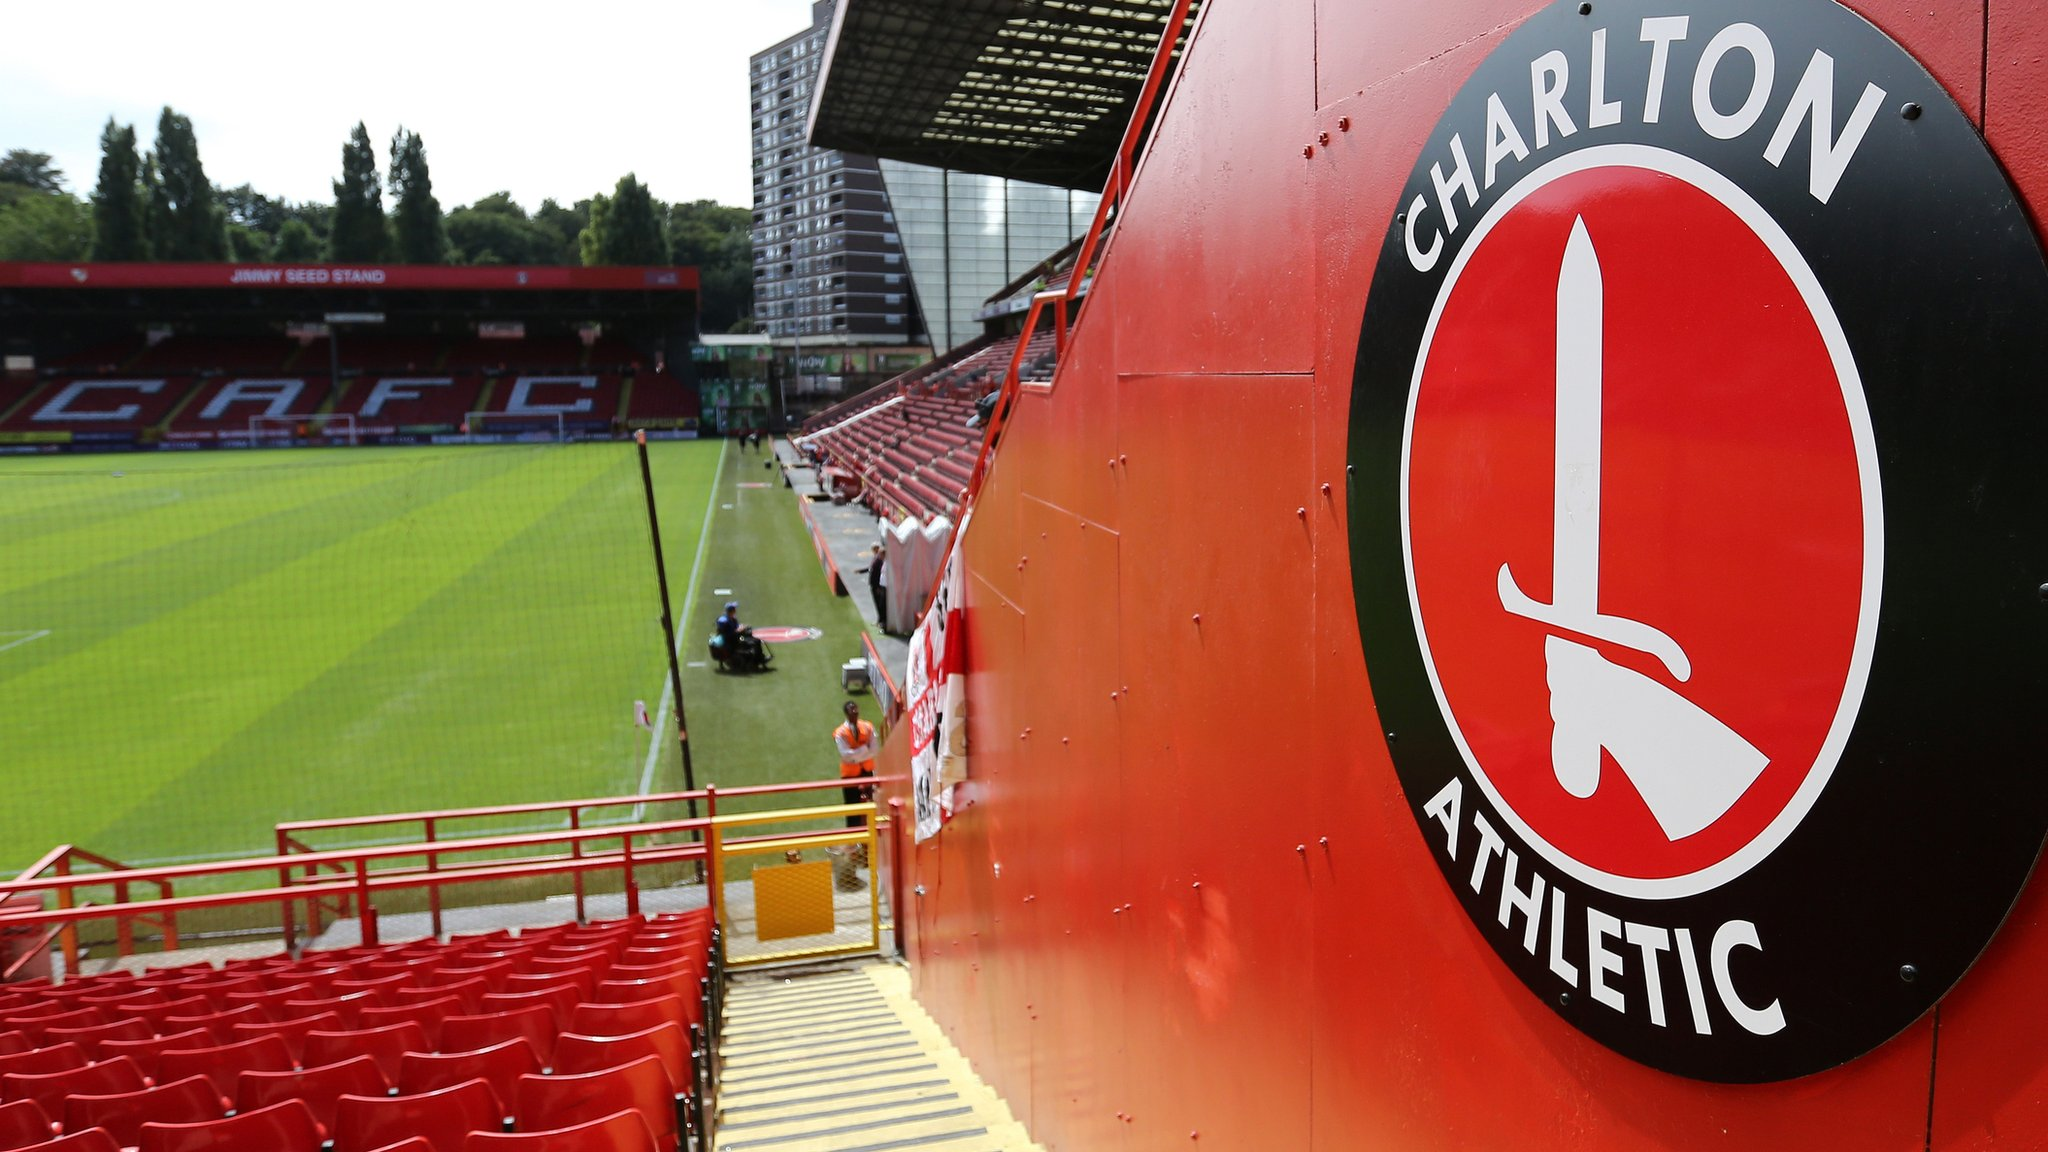 Charlton Athletic: Bonus row with employees said to be 'blow' to sale of League One club